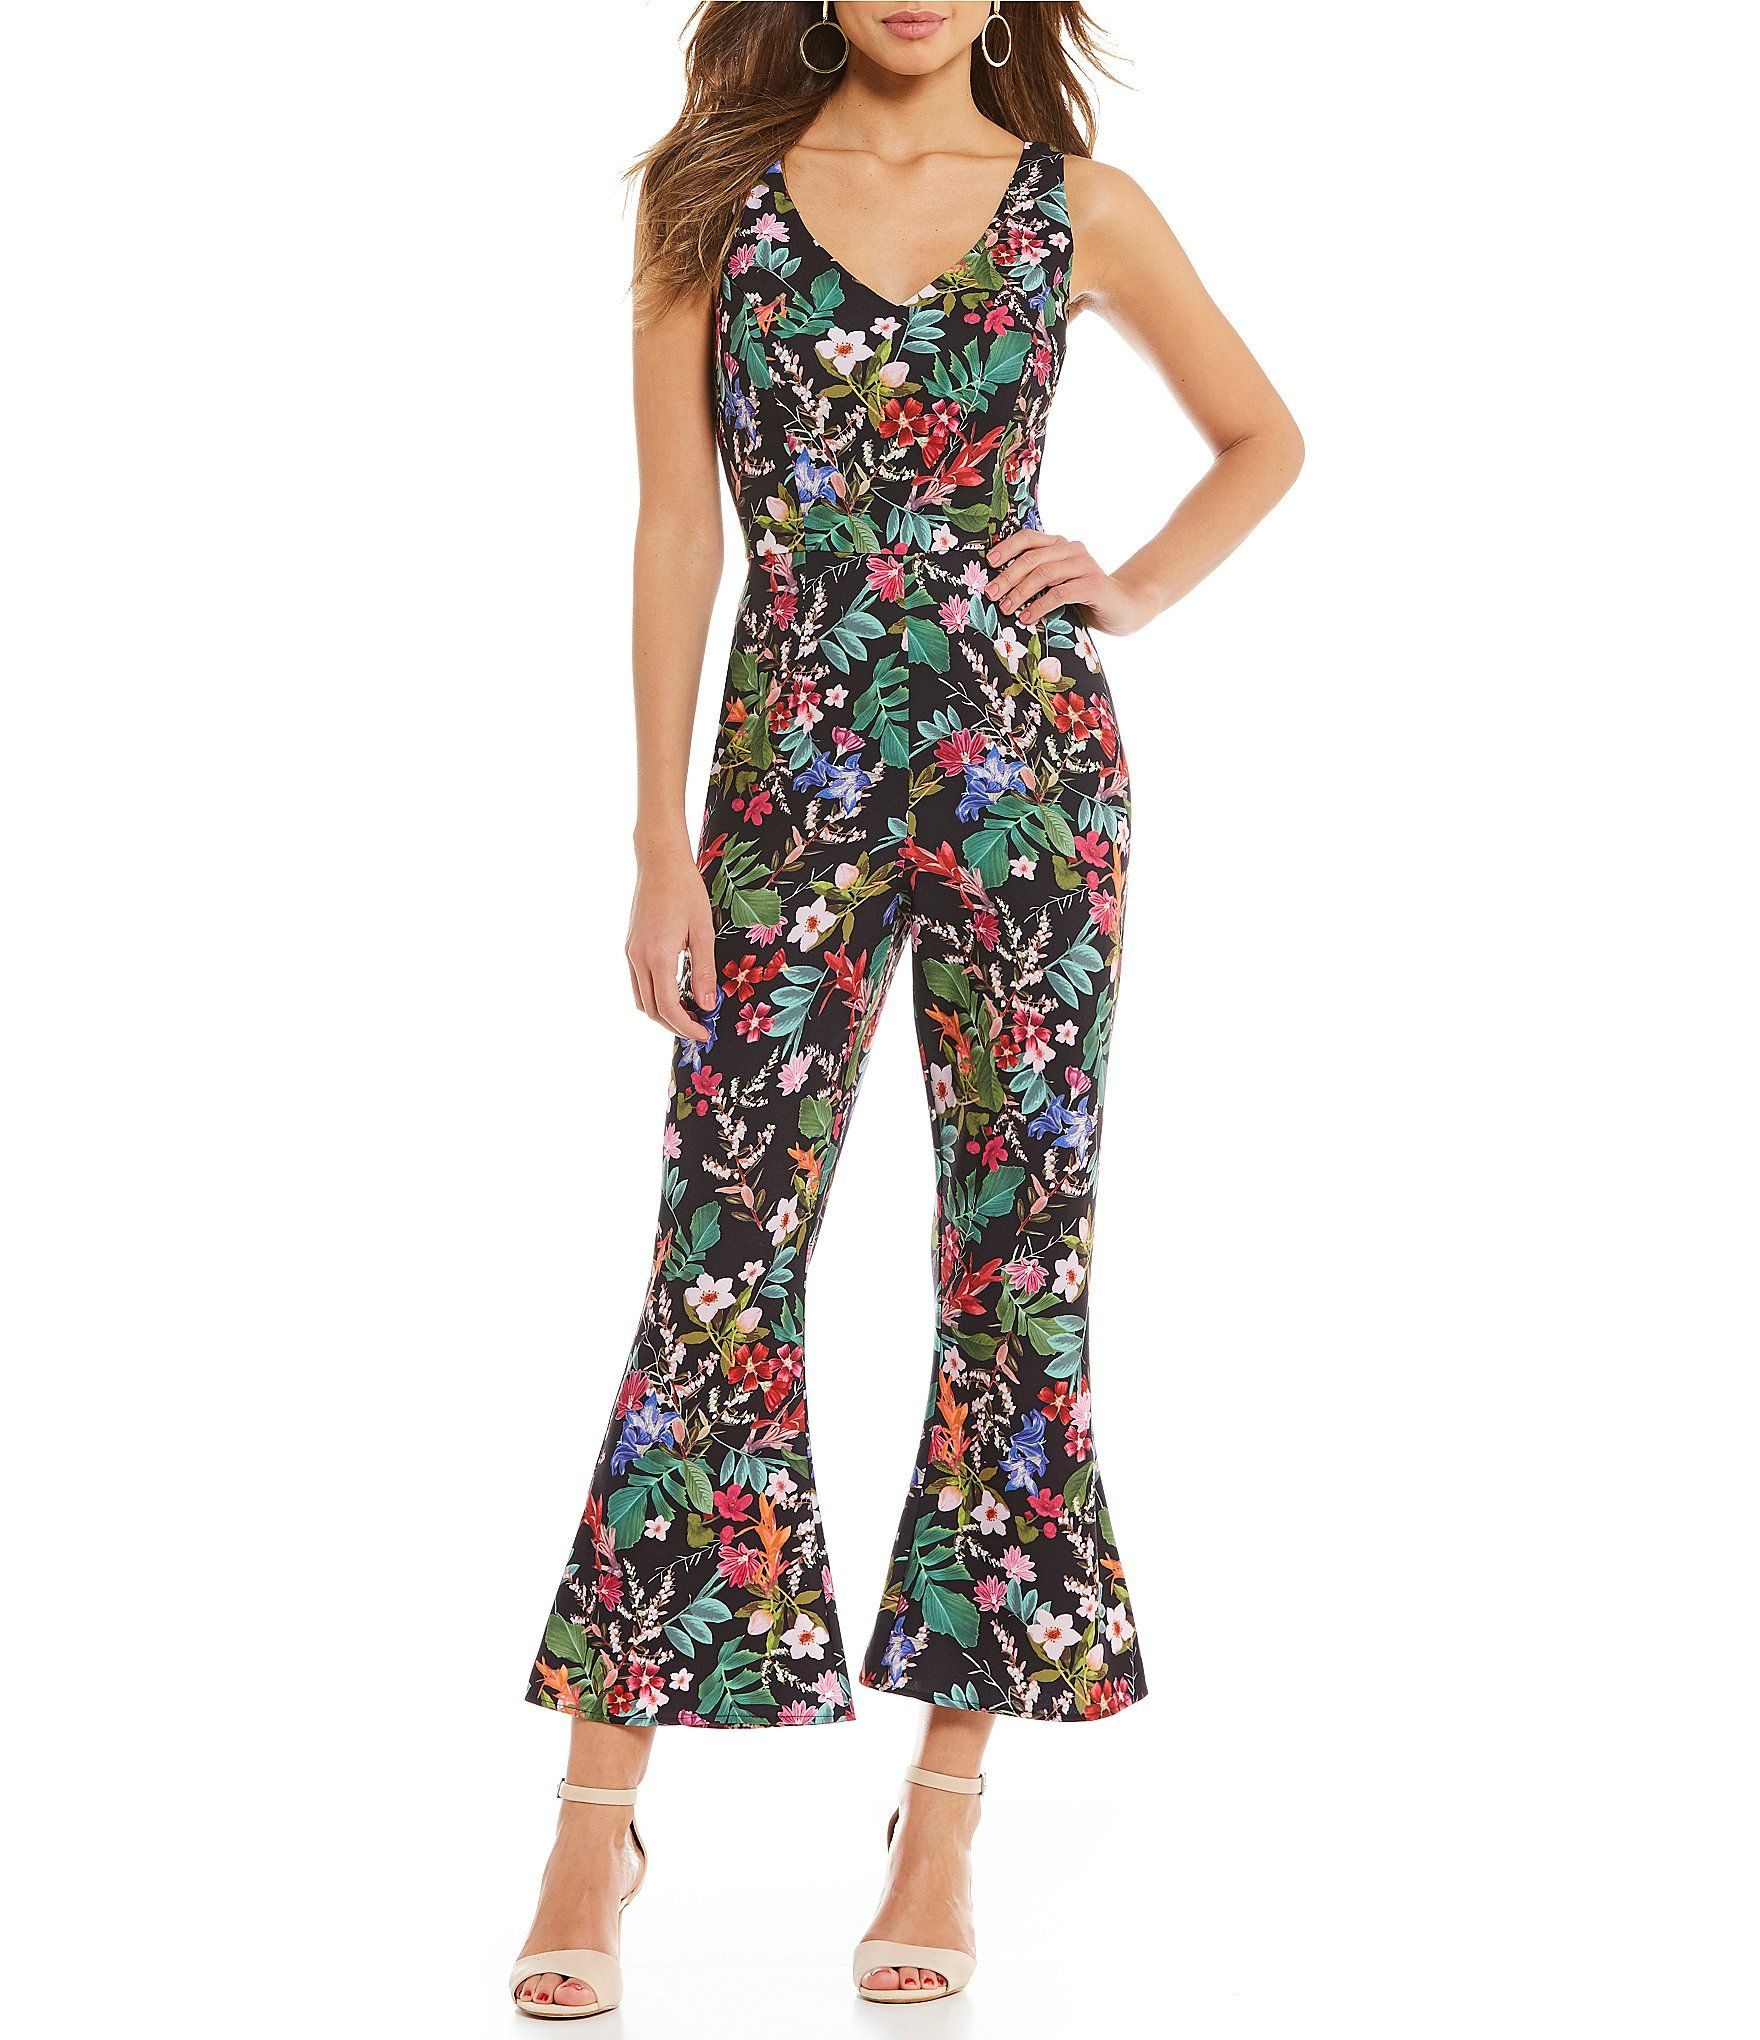 da46774e303 Shop for Gianni Bini Sophia Floral Print Cropped Flared Jumpsuit at  Dillards.com. Visit Dillards.com to find clothing